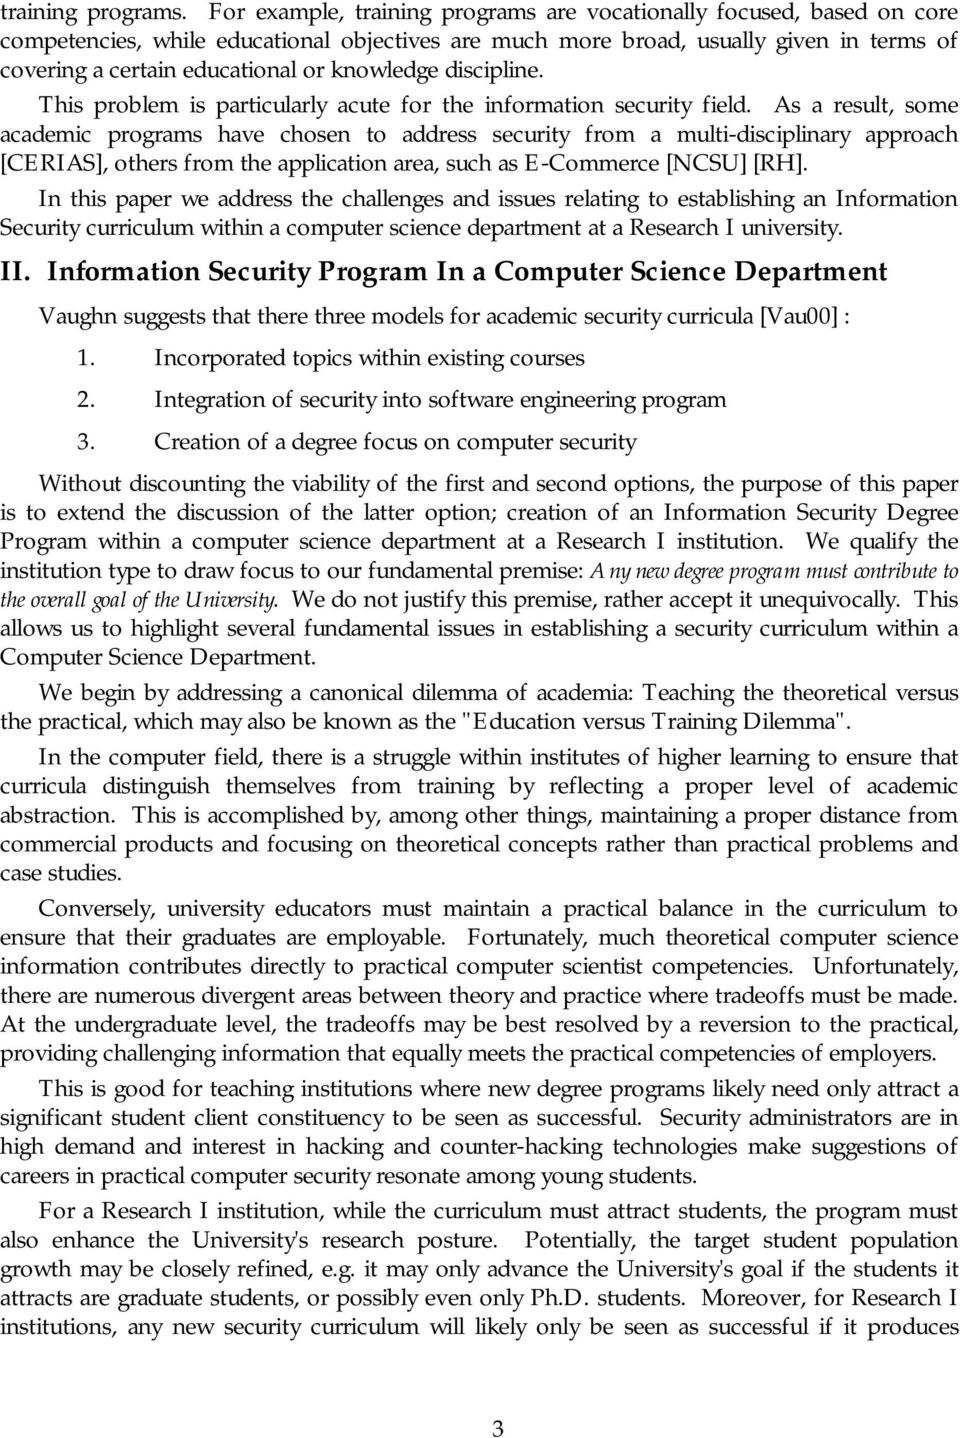 knowledge discipline. This problem is particularly acute for the information security field.